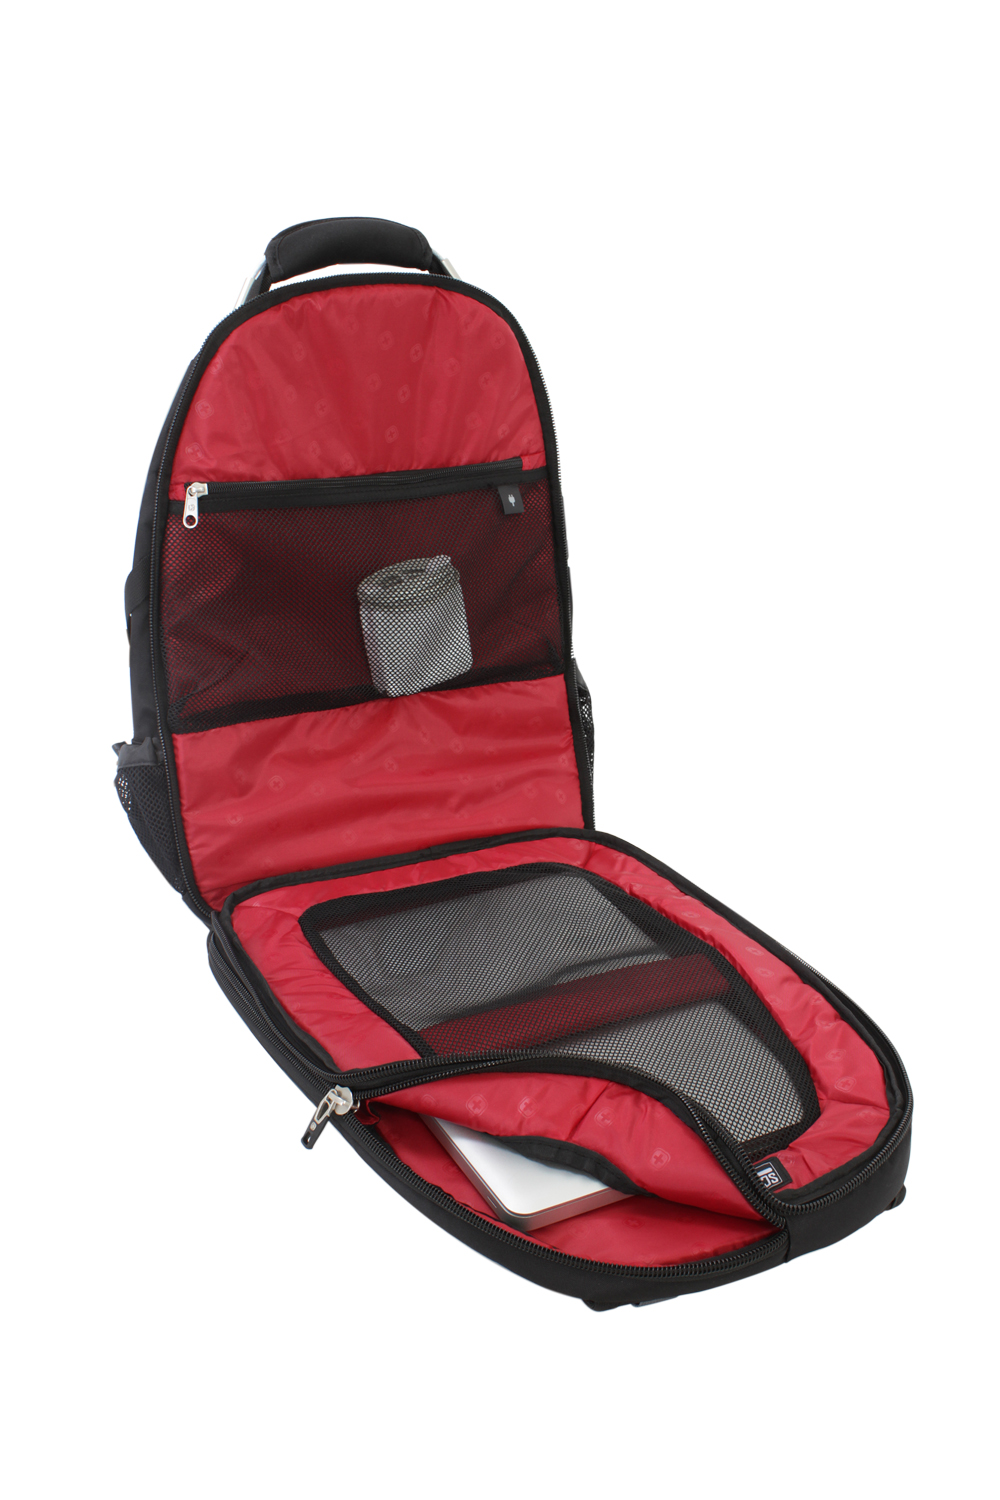 SWISSGEAR 6677 ScanSmart TSA Laptop Backpack